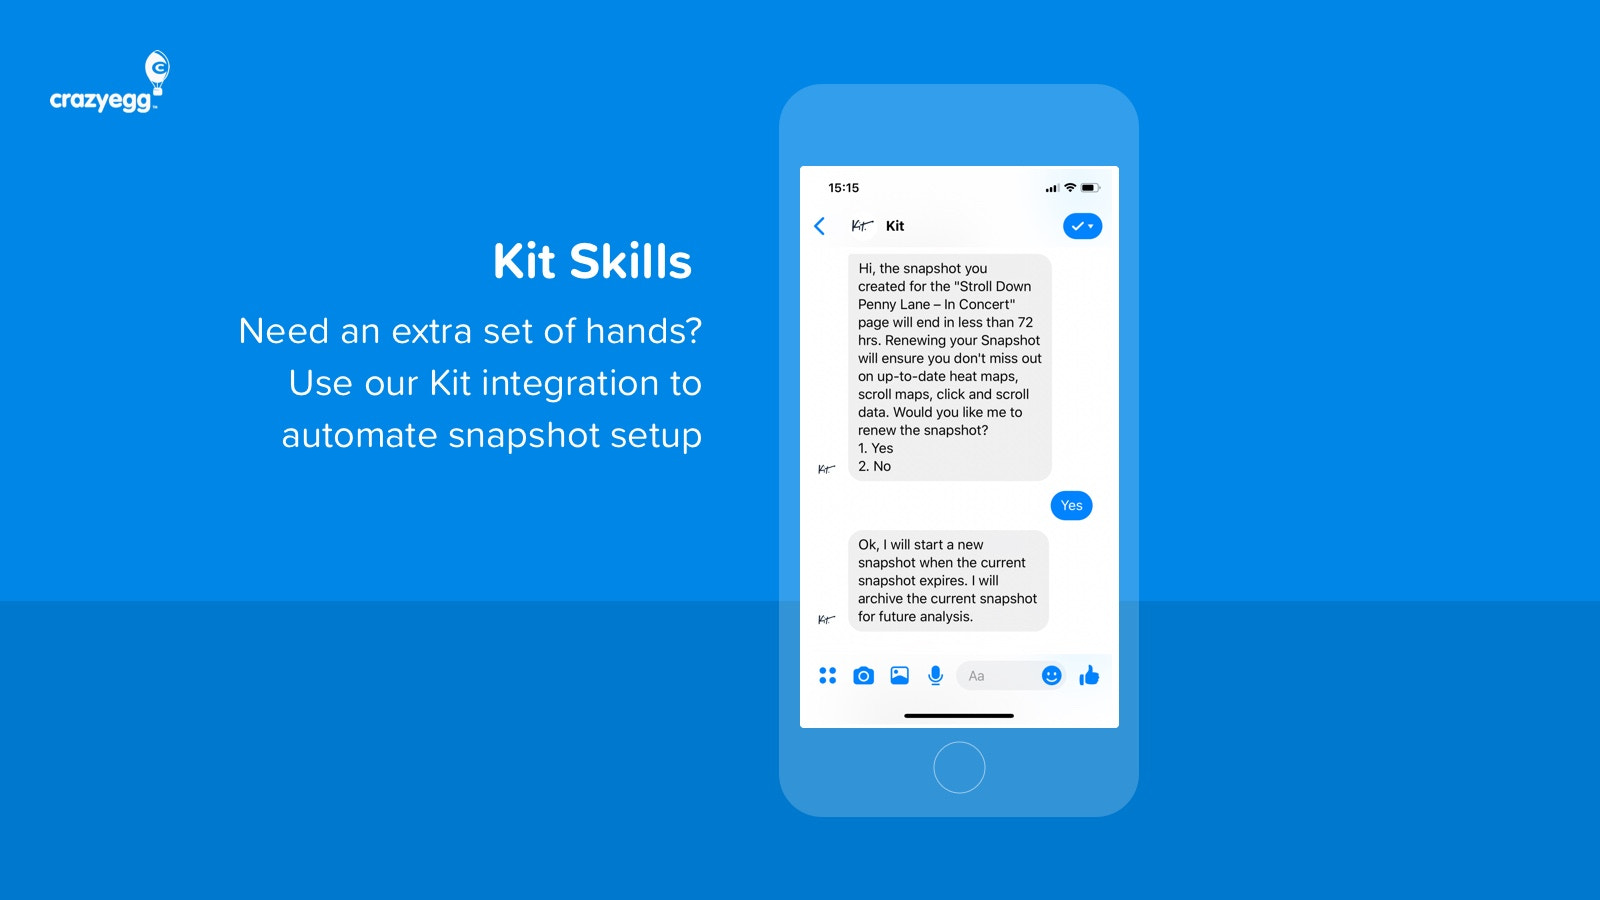 Automated Snapshots with Kit Integration